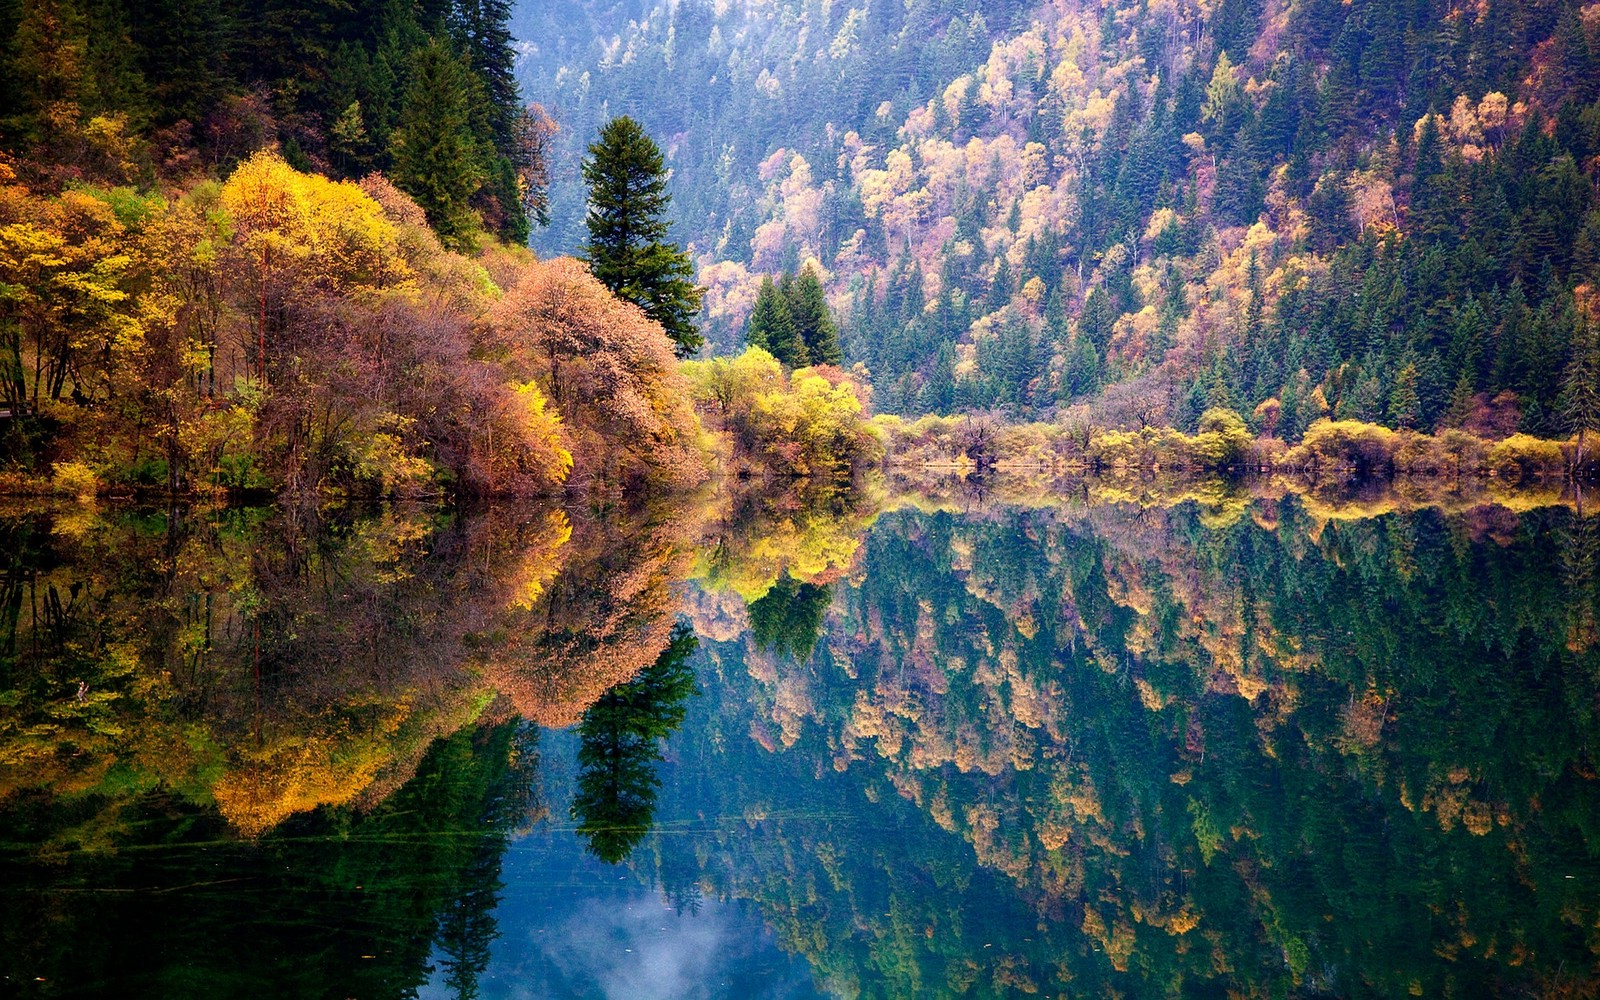 Fall Wallpapers For Desktop Idaho Nature Landscape Blue Reflection Fall Forest Lake